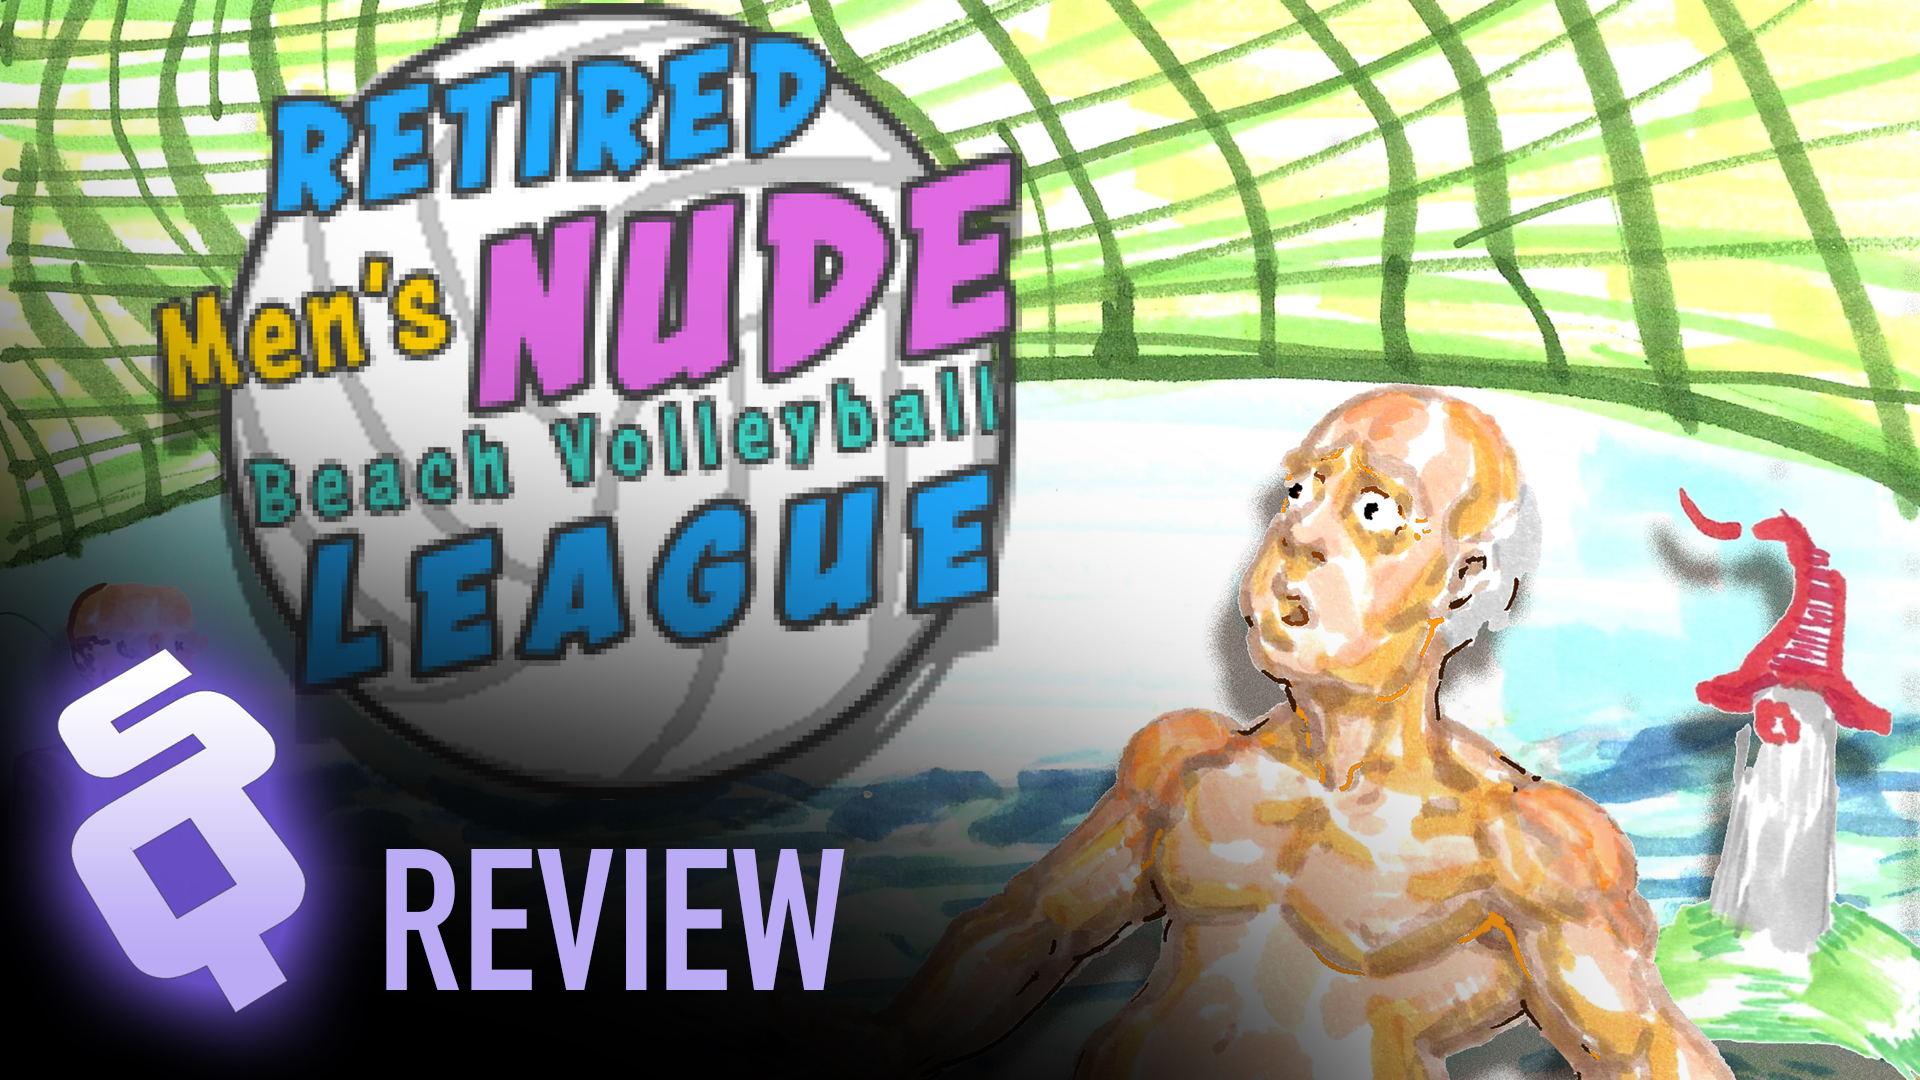 Review: Retired Men's Nude Beach Volleyball League